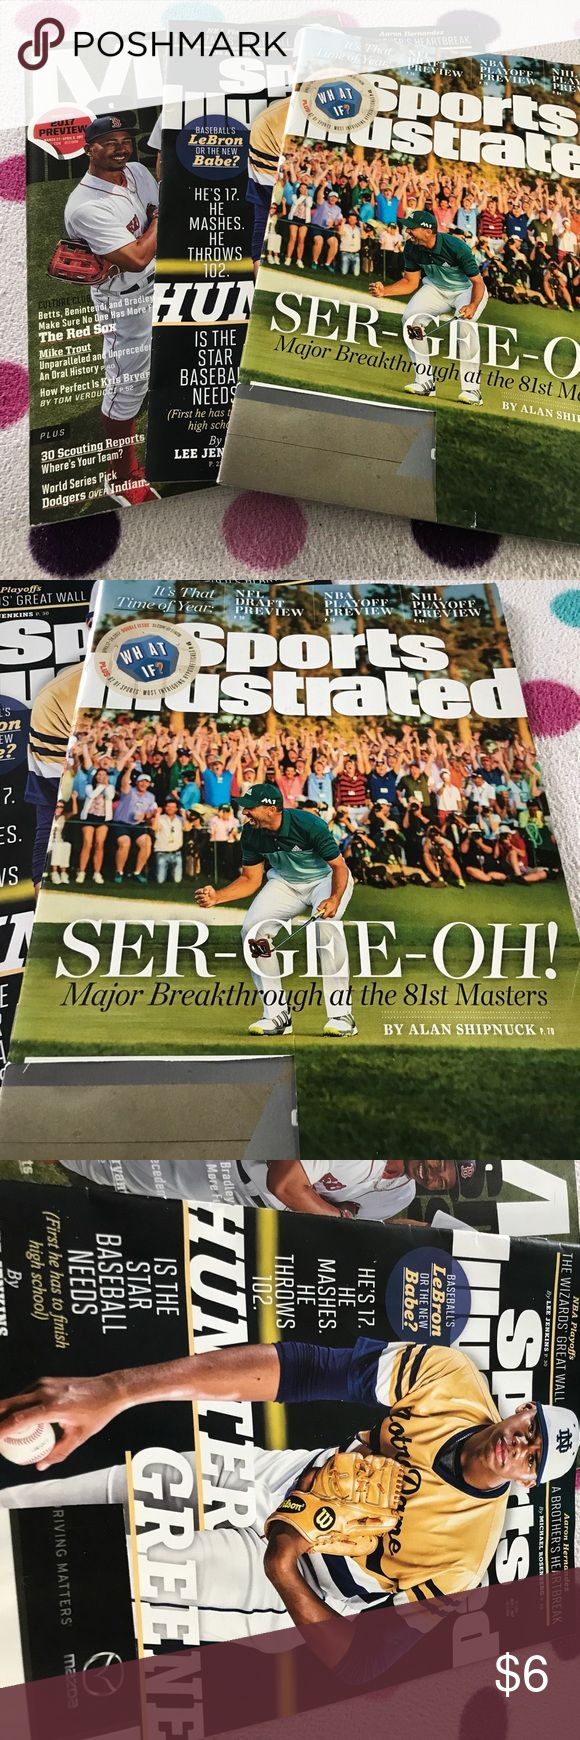 Three issues of Sports Illustrated All are in perfect intact condition aside from address labels being cut of front covers.  🌼Thank you for looking!  🌼I ship within 2 days shipping excluding holidays 🌼I do not trade! 🌼I only accept offers through the offer button! 🌼Thank you for shopping and feel free to ask any questions! Accessories